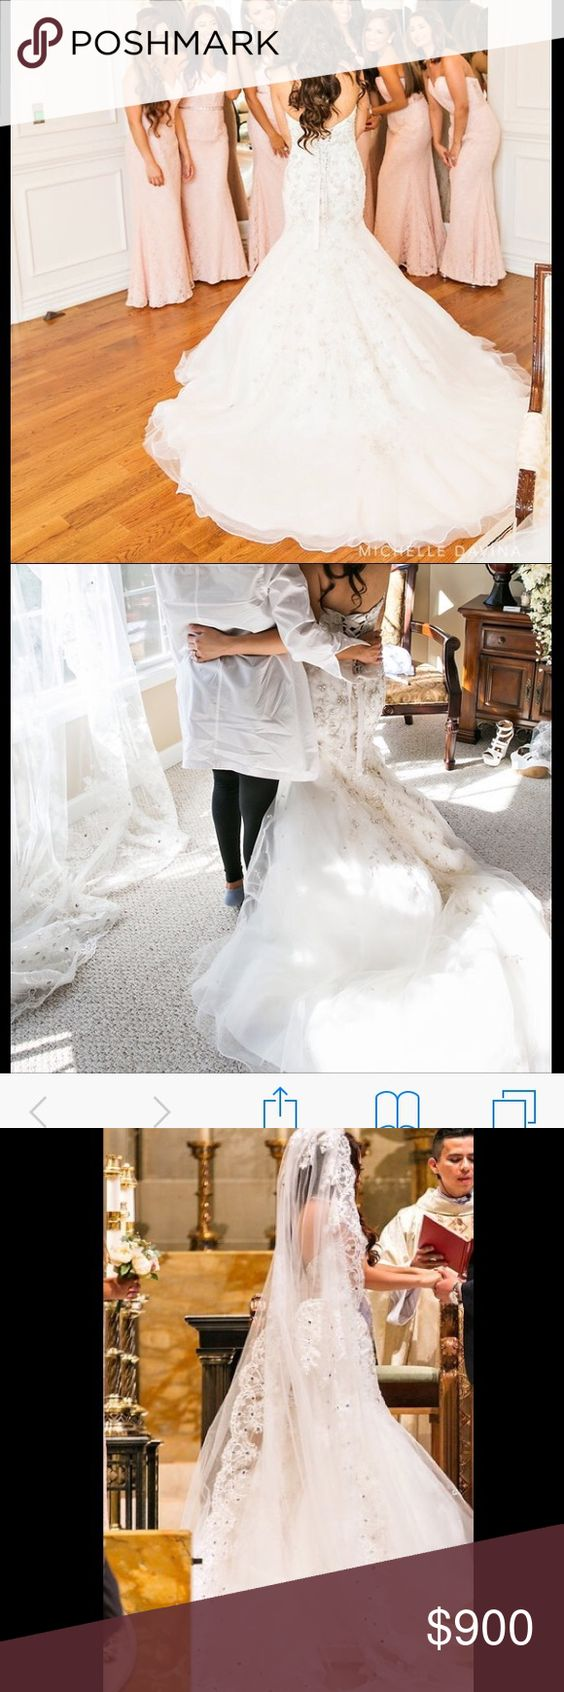 Long veil wedding dresses  Mori Lee wedding dress and beautiful long veil Wedding dress is in